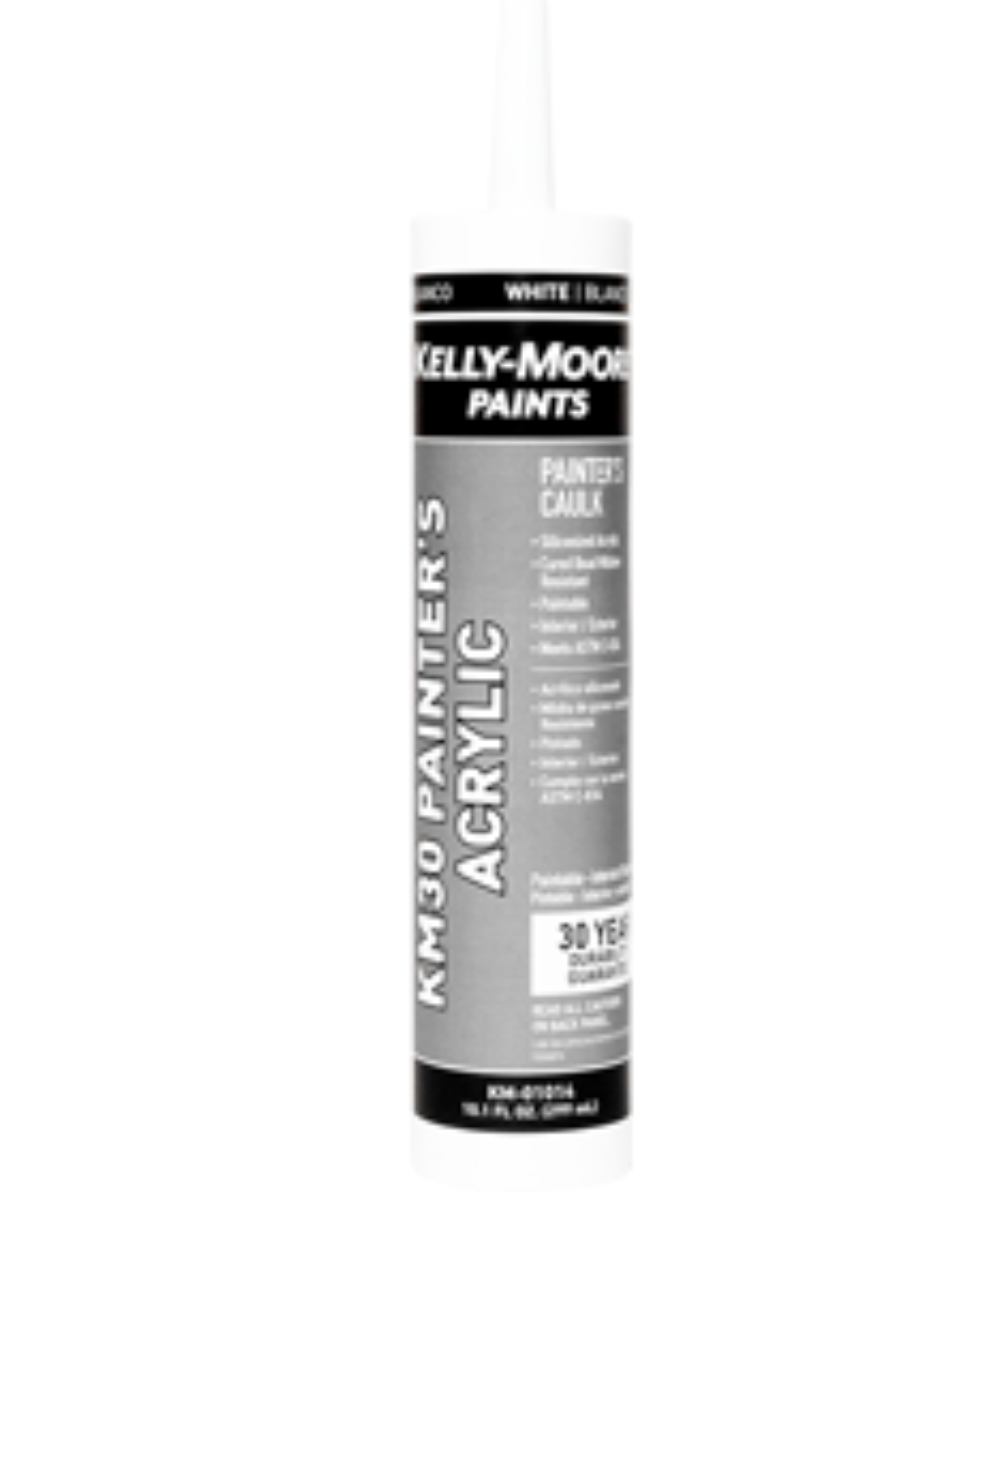 10.1oz White Acrylic Painters Caulking, available at Kelly-Moore Paints for Contractors.